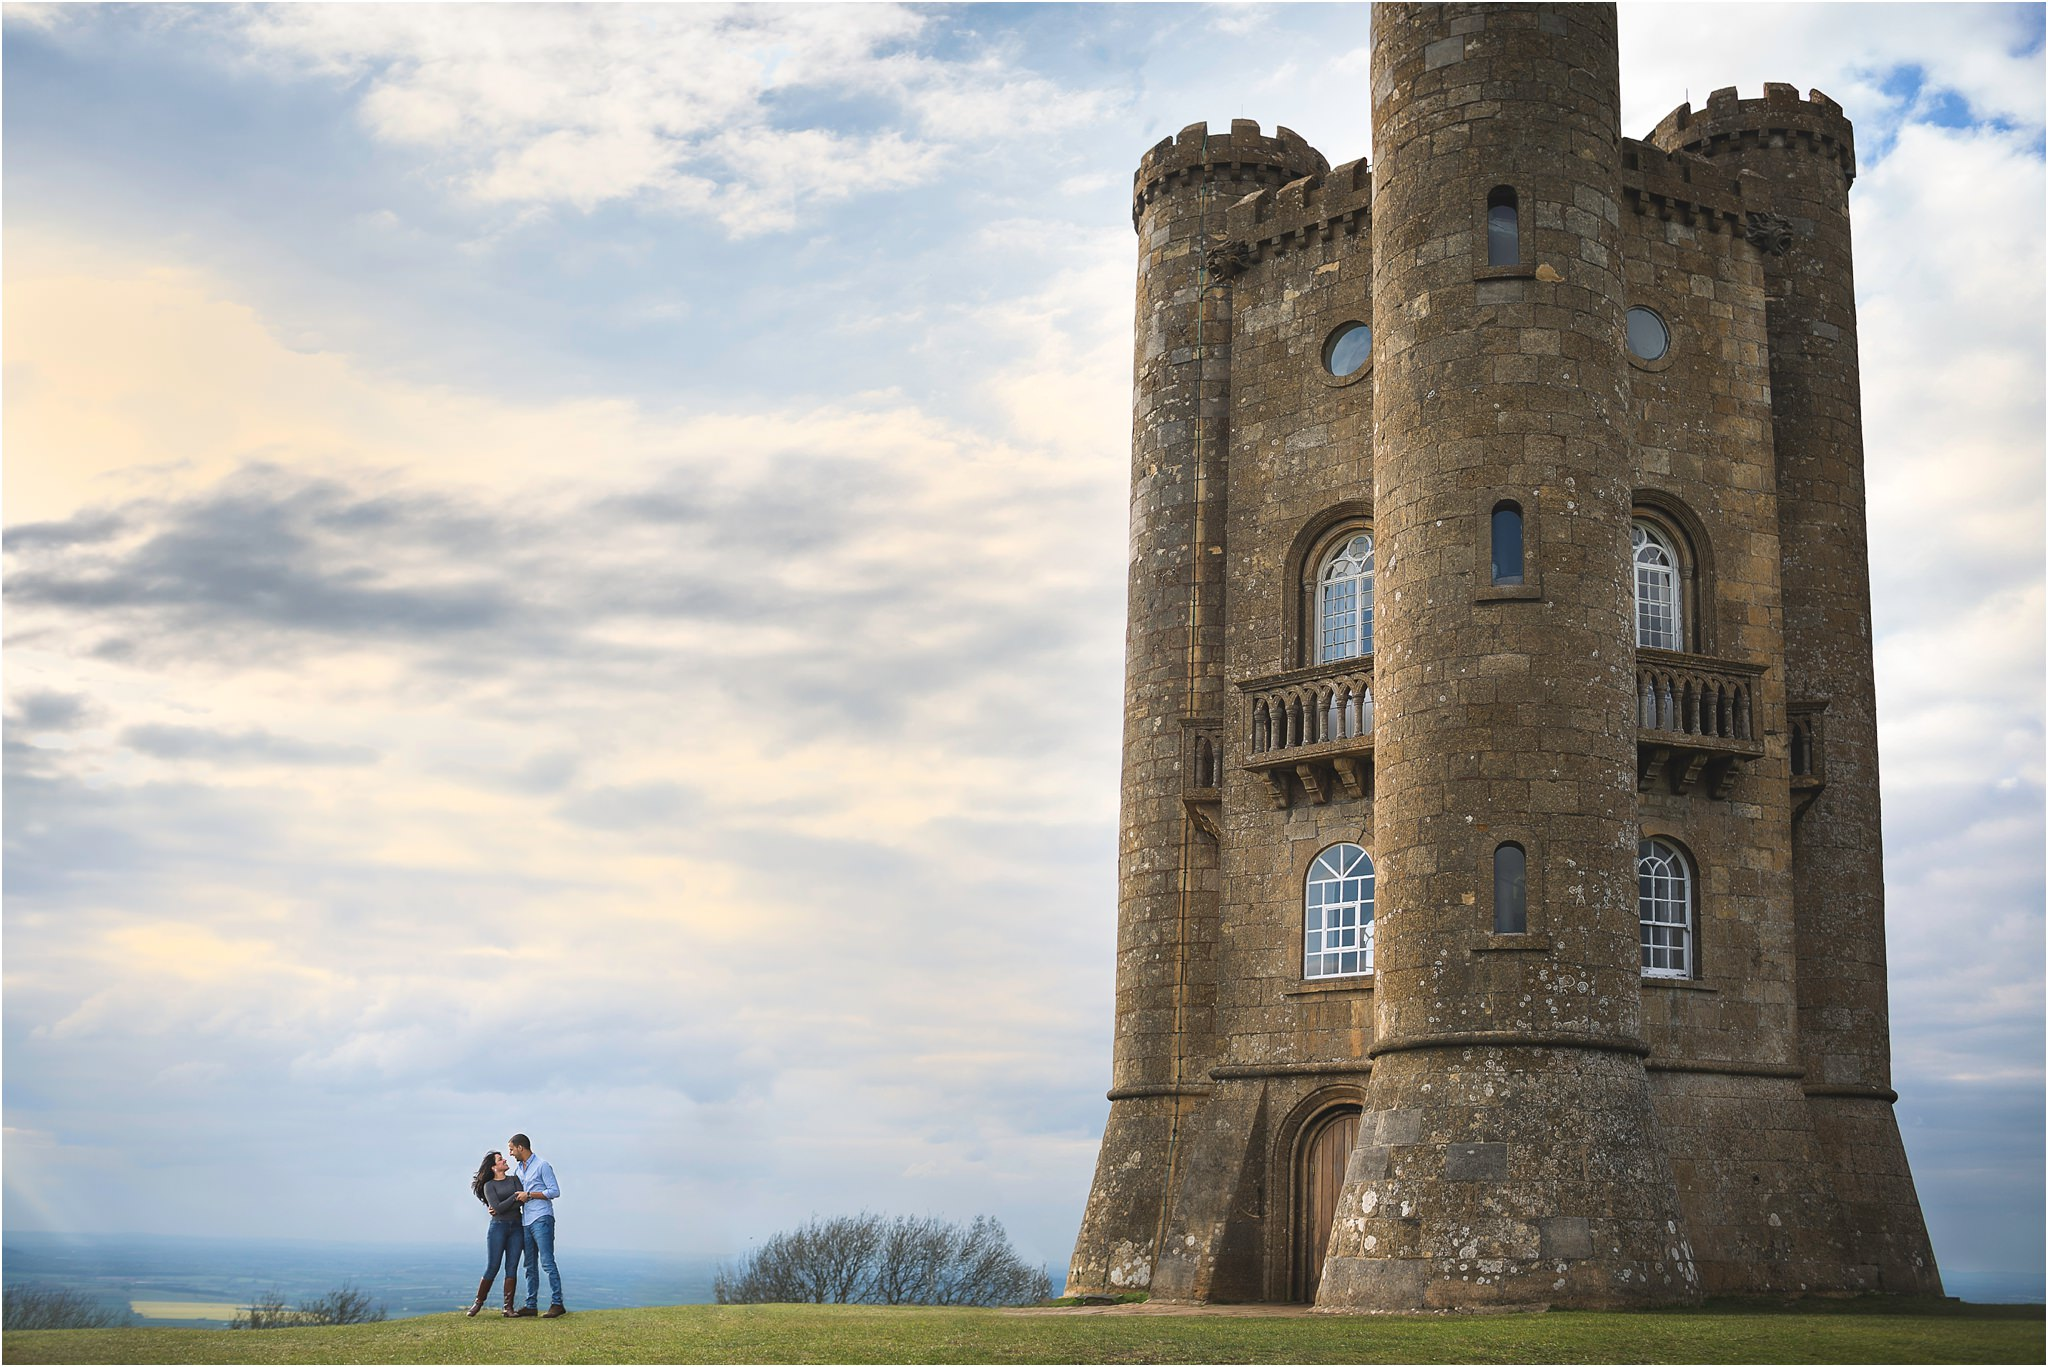 A couple in front of Broadway Tower in Worcestershire with a moody sky.